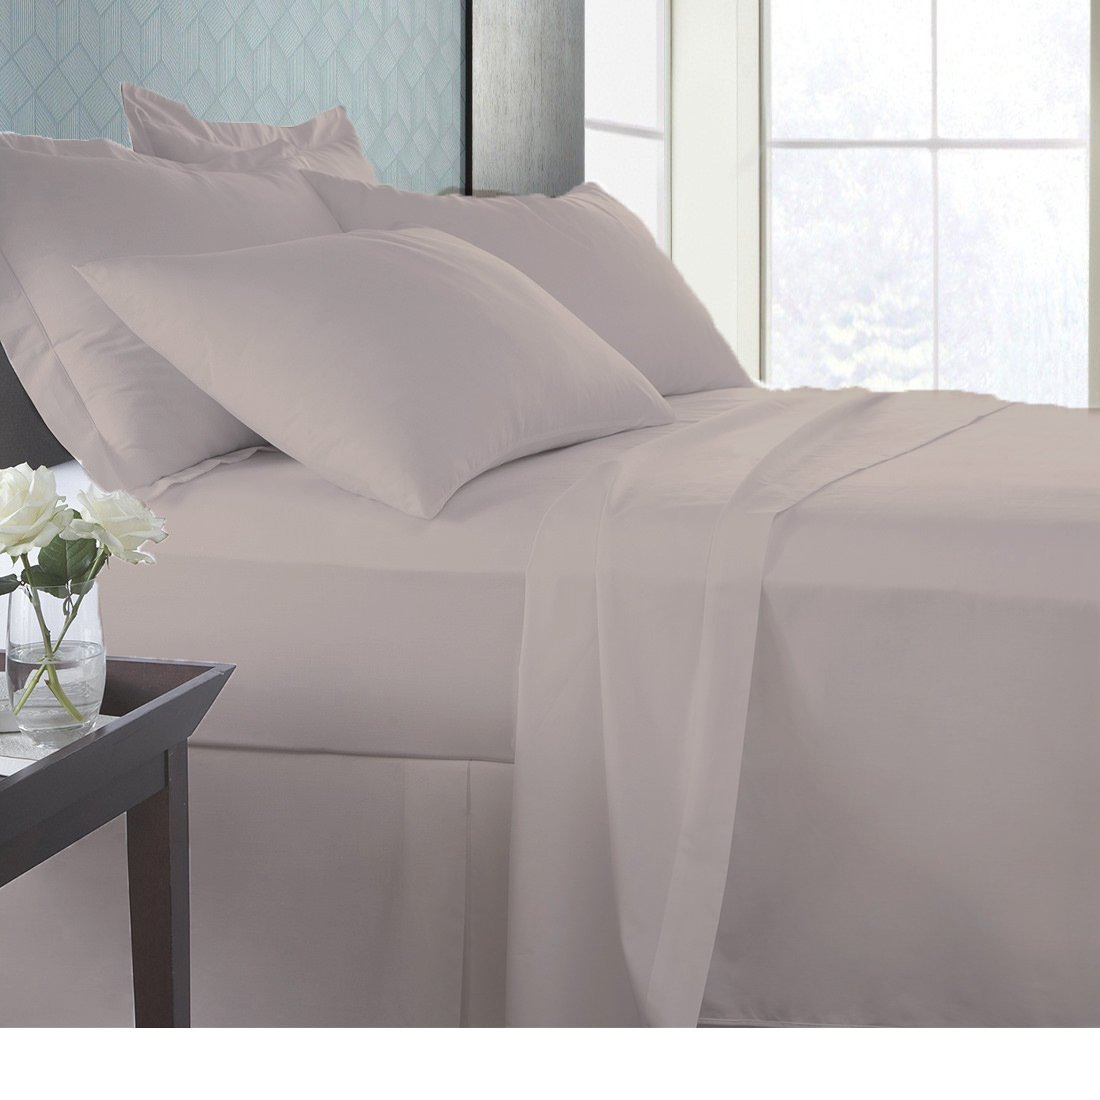 """America Bedding Bamboo Sheet set 800 TC, Italian finish Eco-friendly, Hypoallergenic, Fade resistant and Less piling 21"""" deep pocket antibacterial fiber sheets Sale on Amazon King, Taupe"""